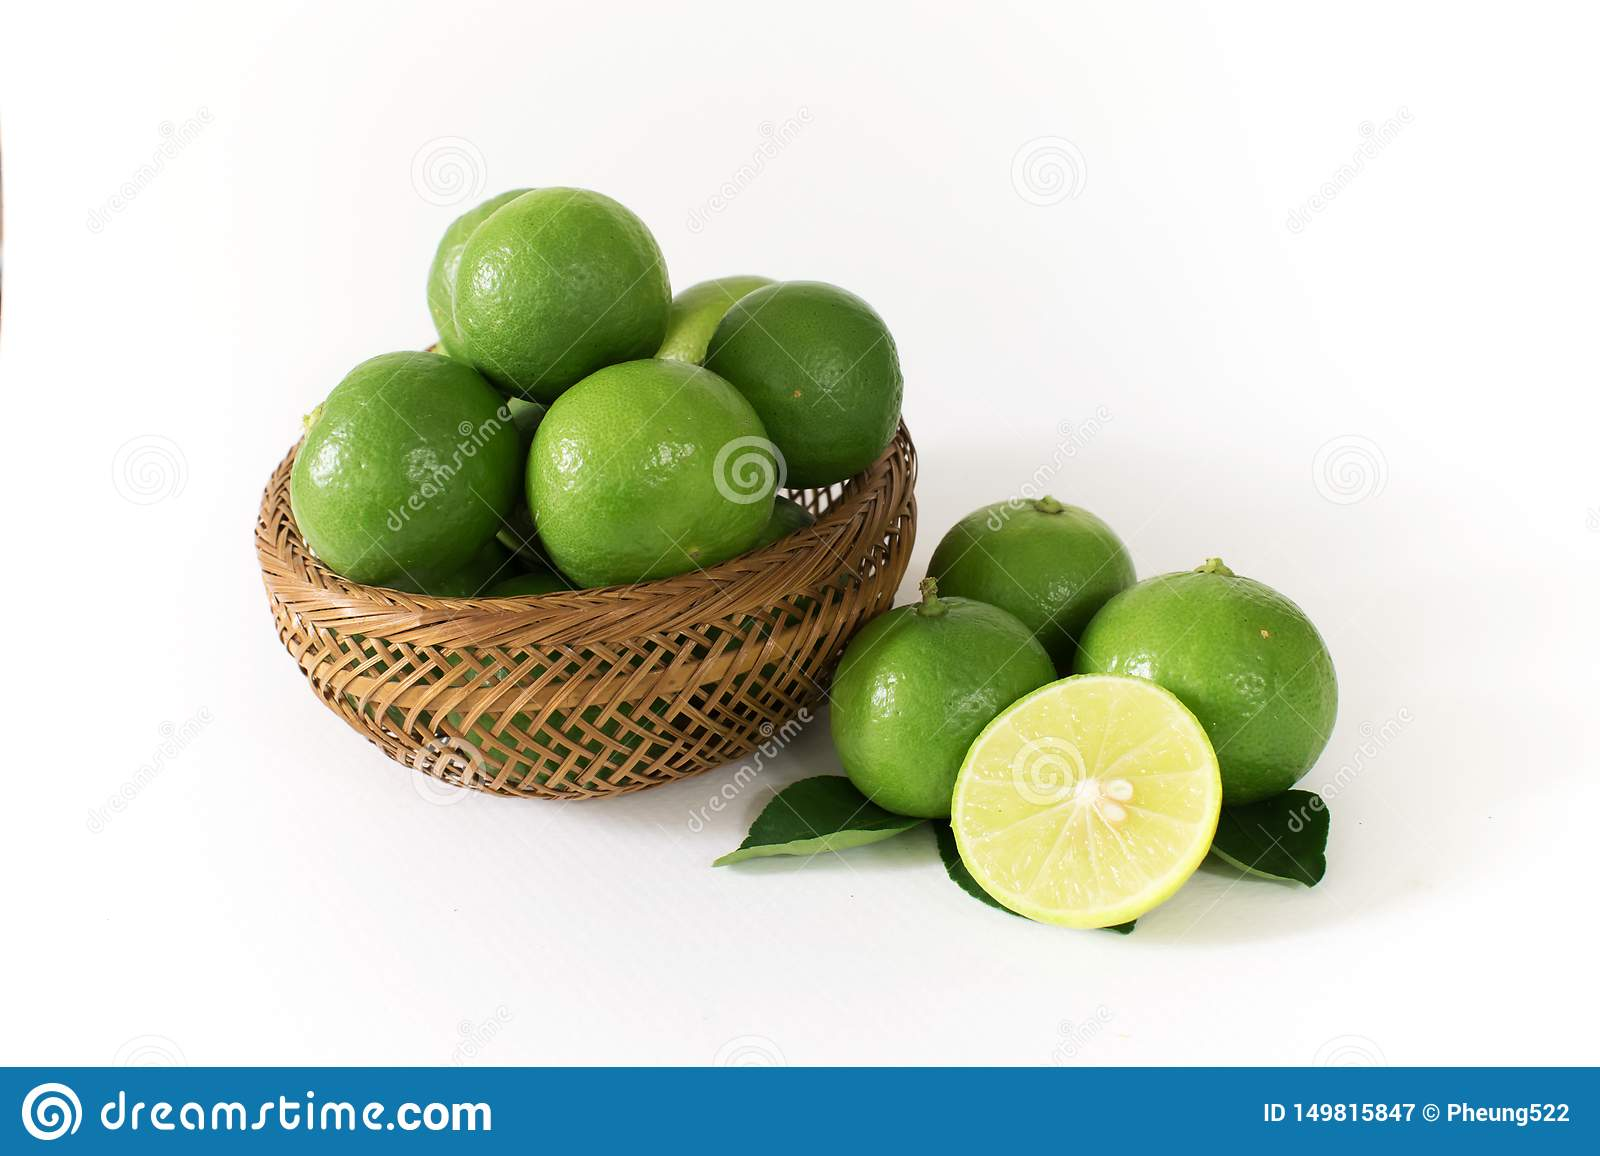 Lots of green lemon are in a wooden basket. And some of the outside with lemon slices cut in half on the side